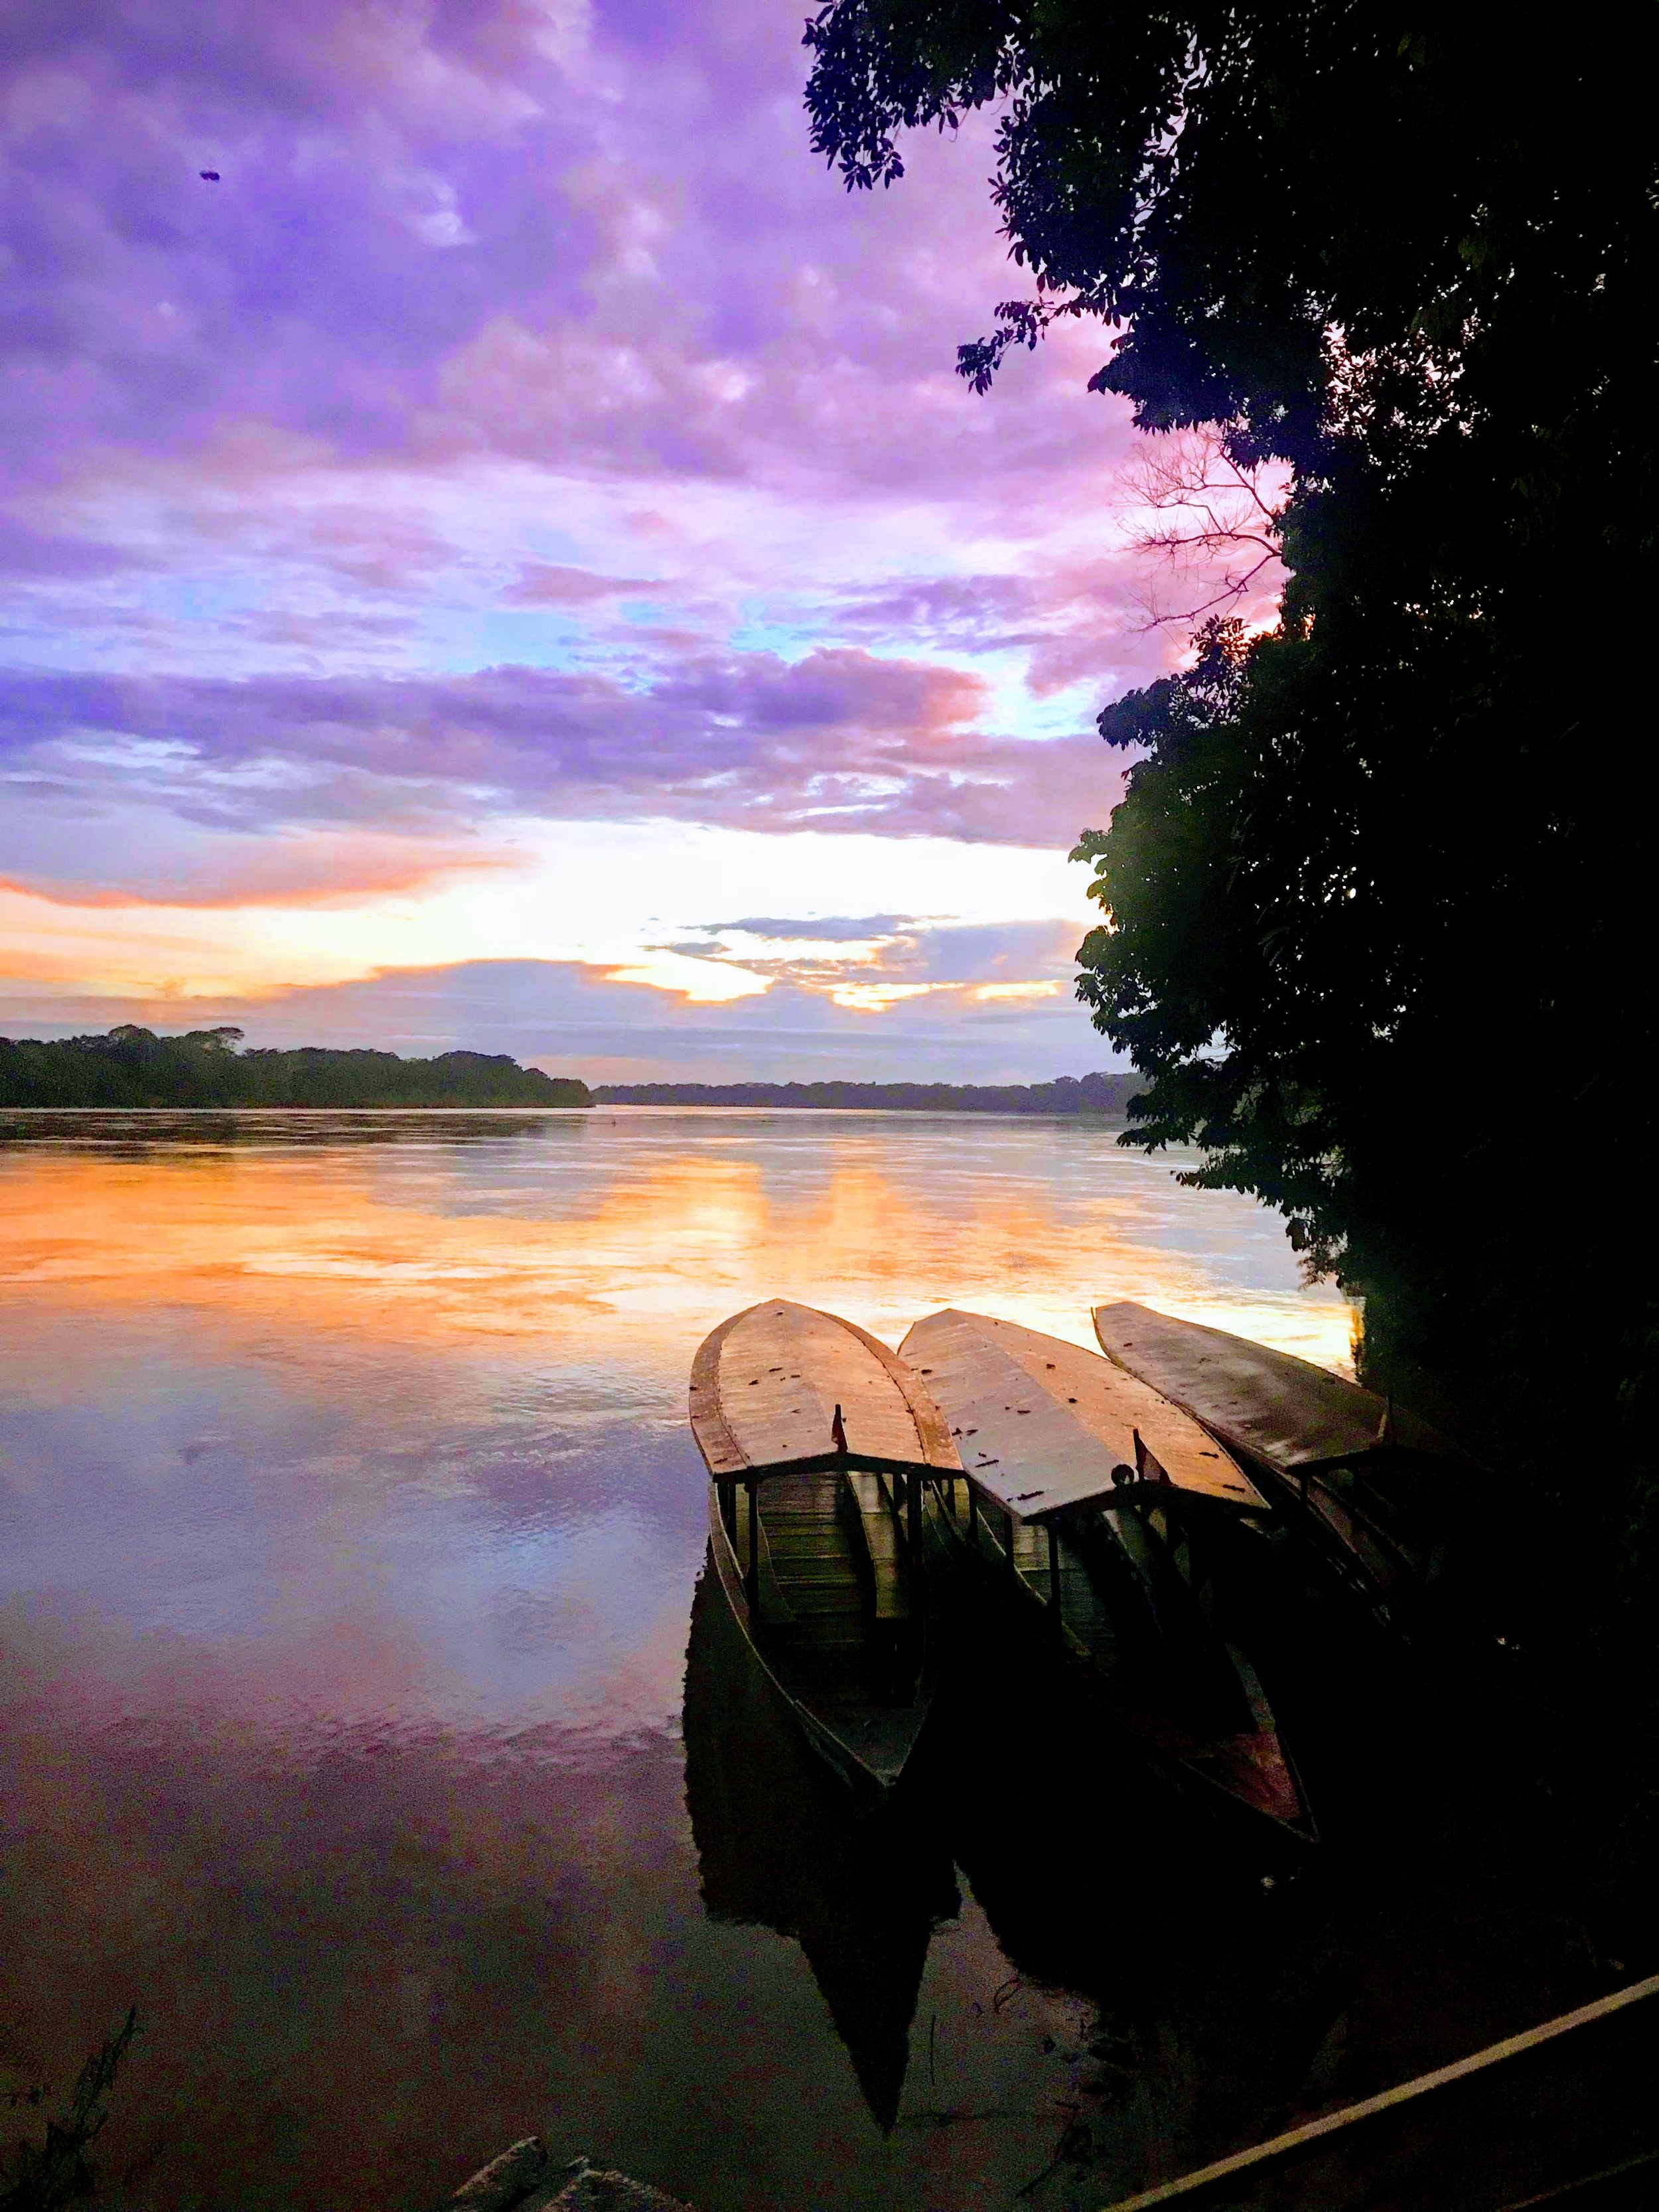 Canoes used for river transportation, here tied up at Hacienda Concepcion during sunrise